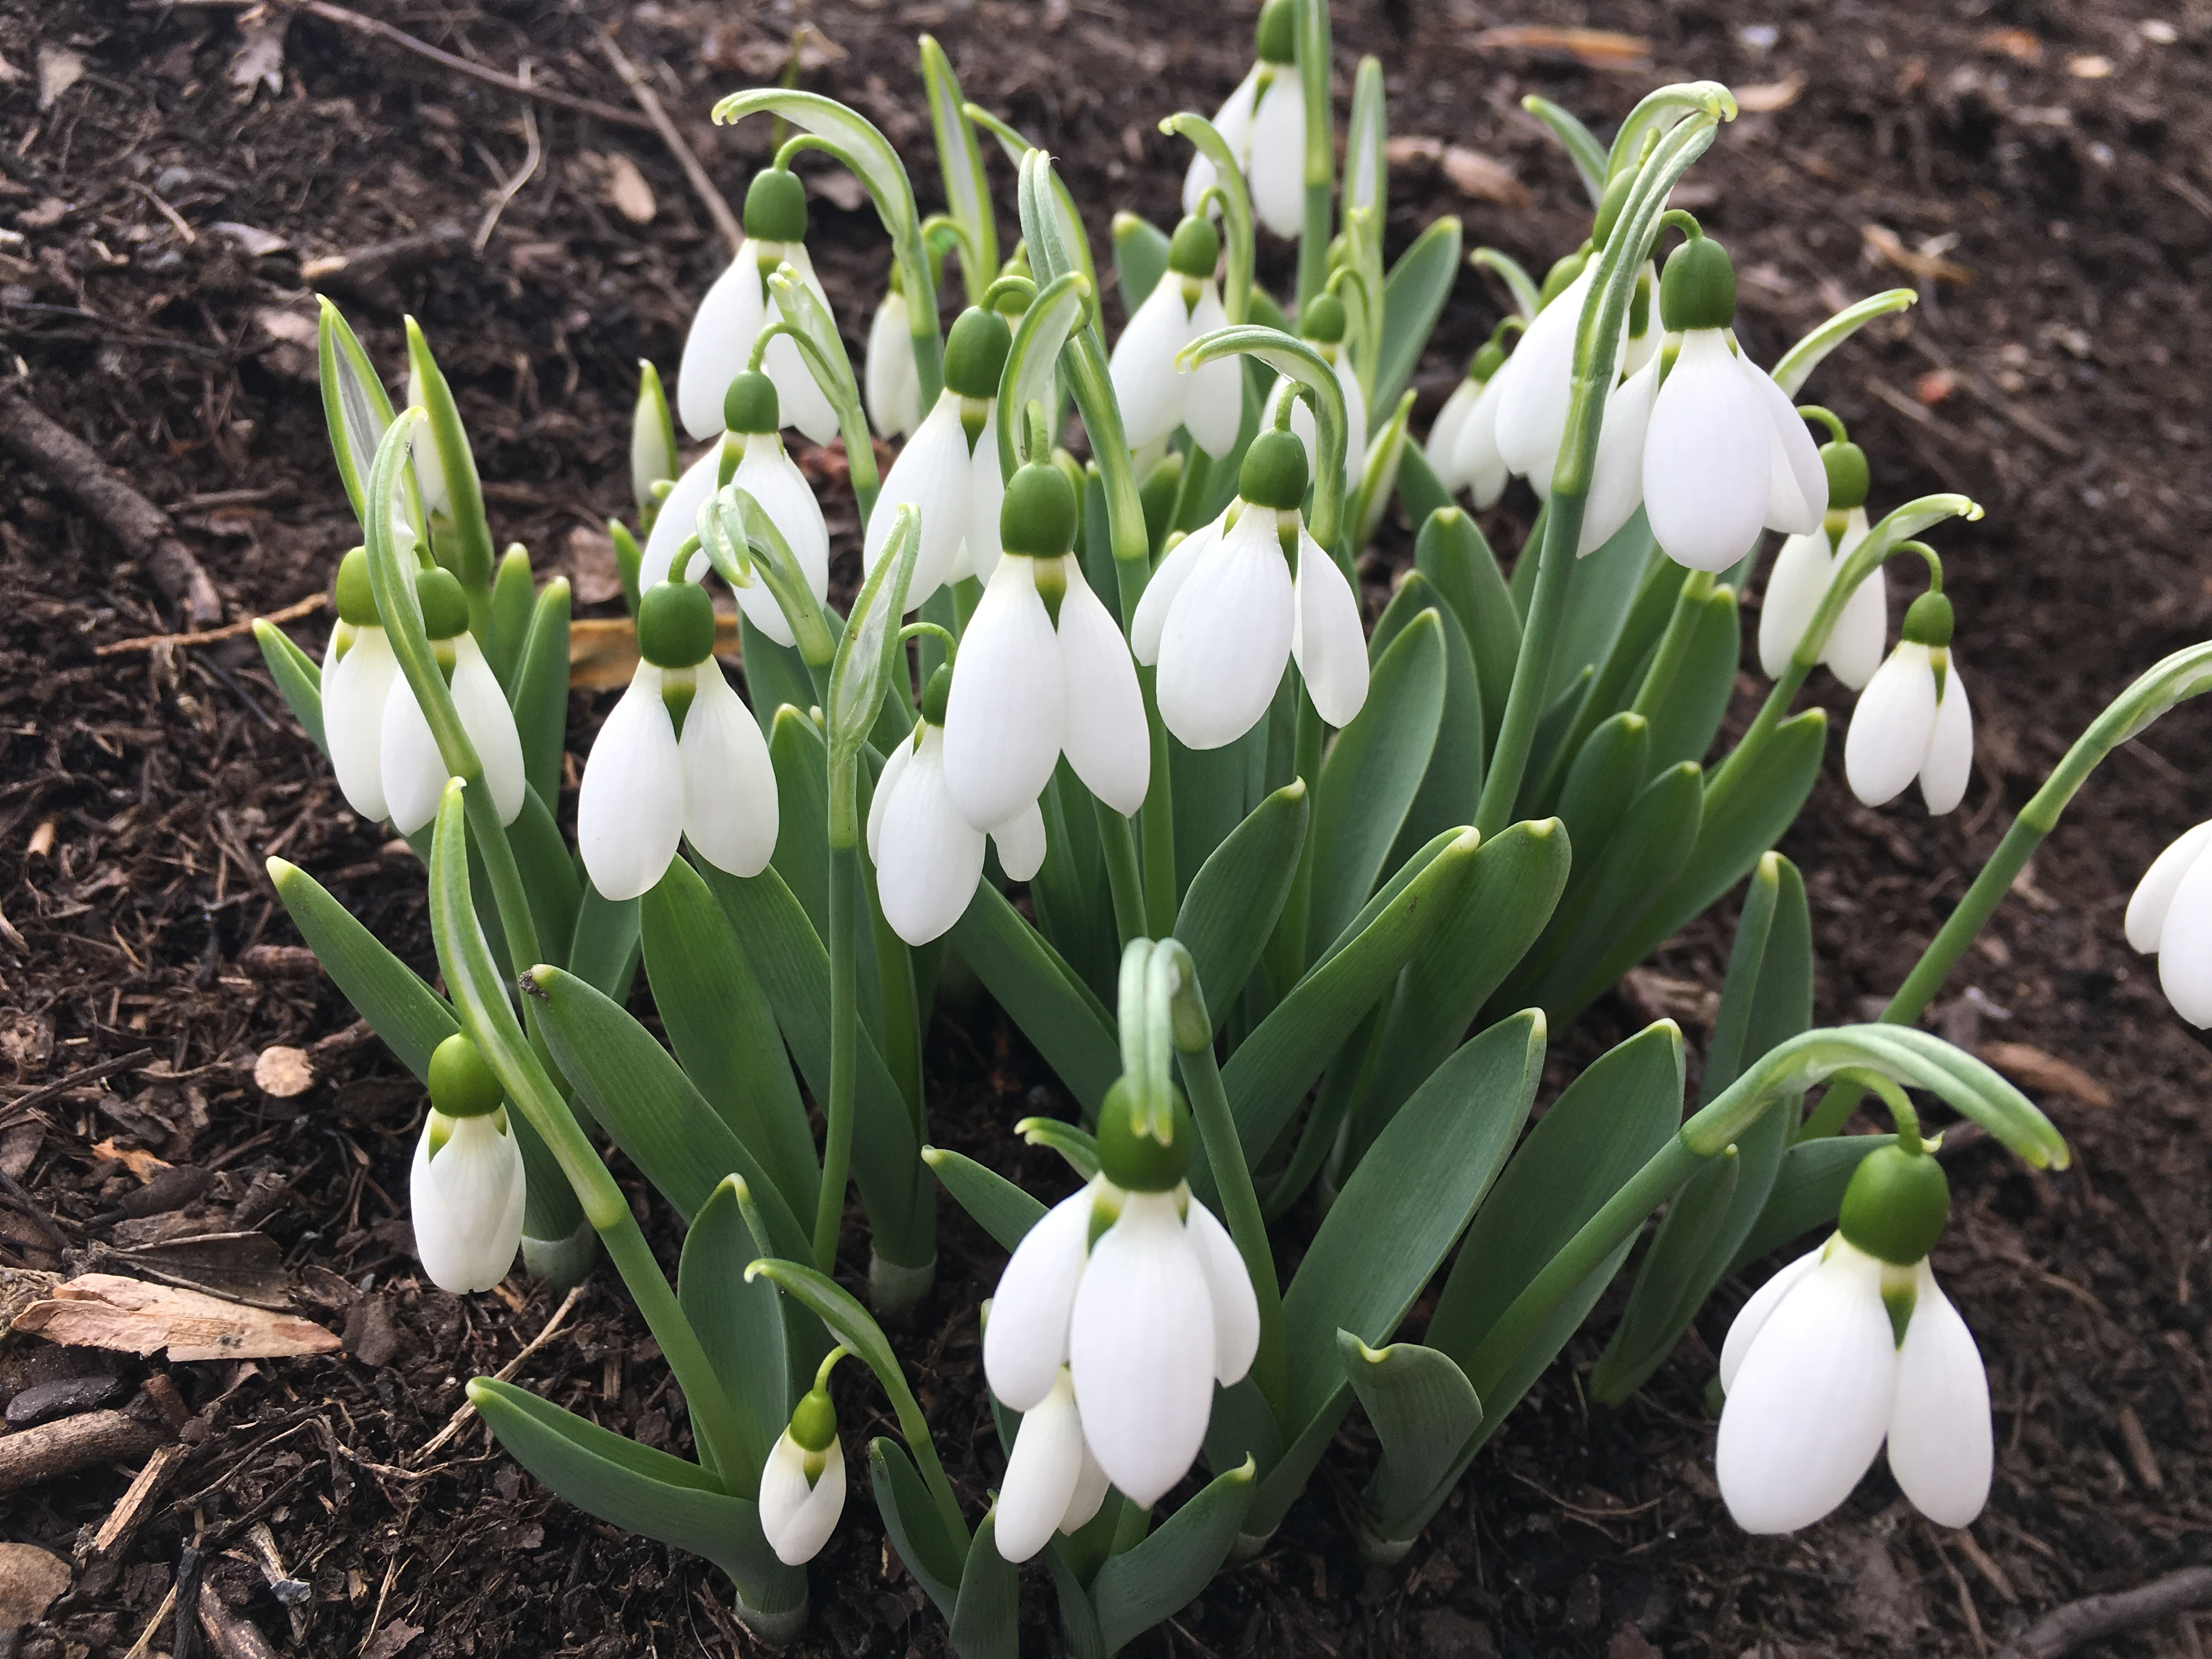 Snowdrops blooming on February 25, 2017